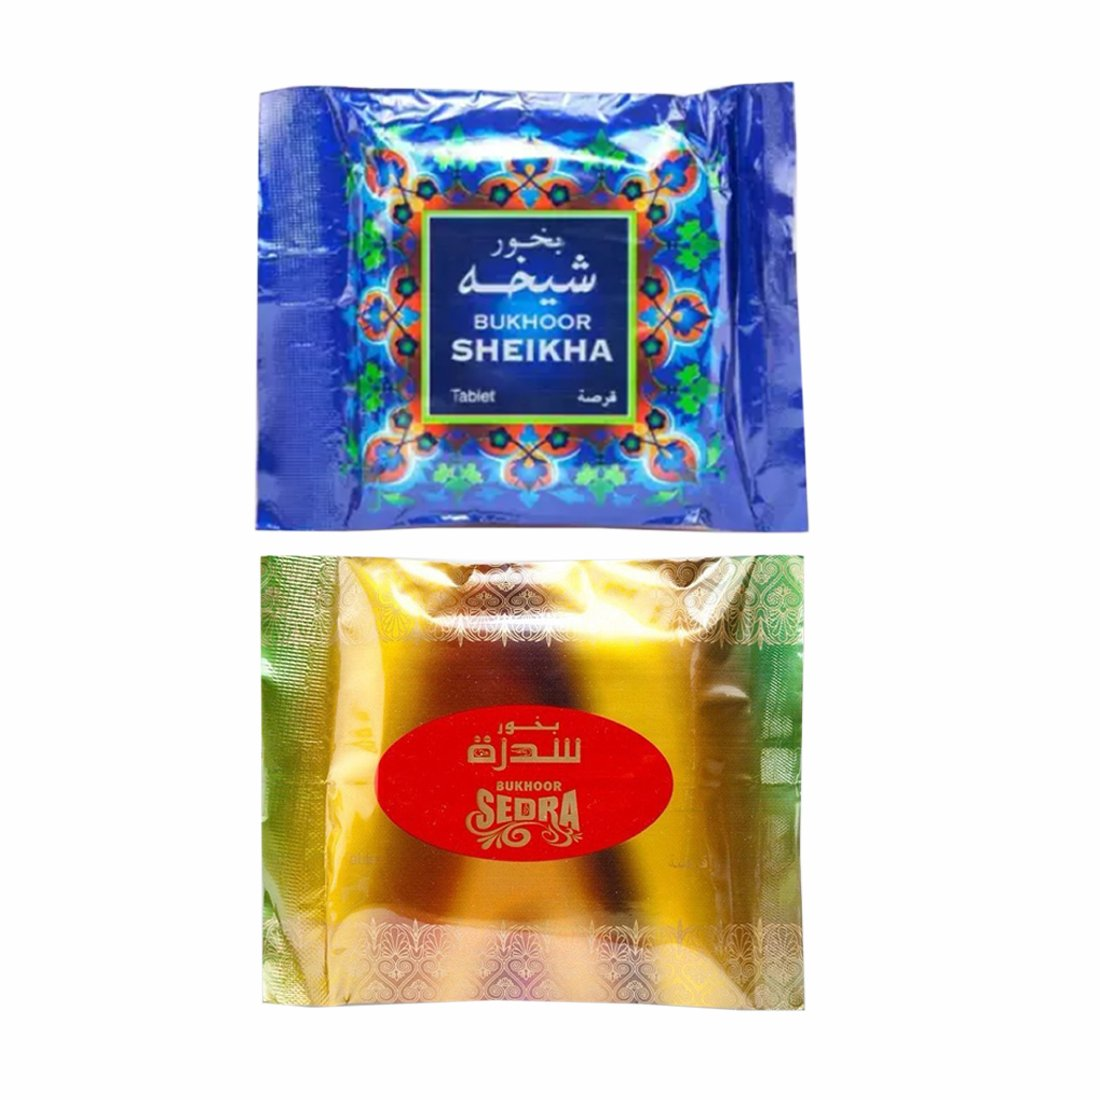 Al Haramain Bukhoor Sheikha & Sedra Bakhoor Burners Pack of 2